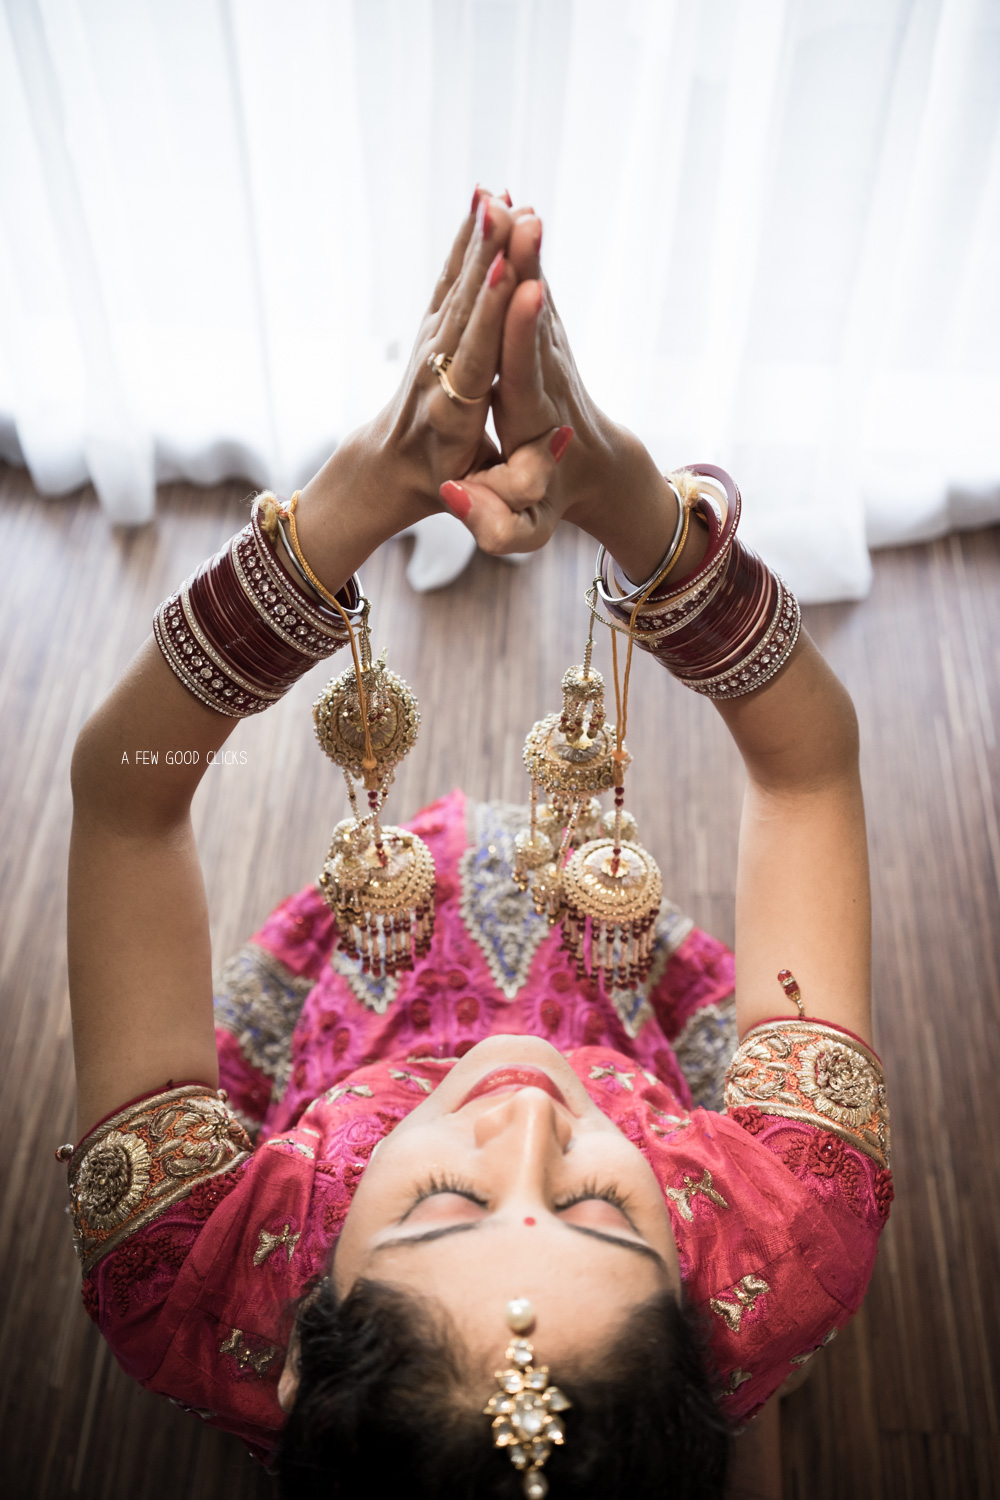 indian-bride-wedding-photography-by-afewgoodclicks-27.jpg